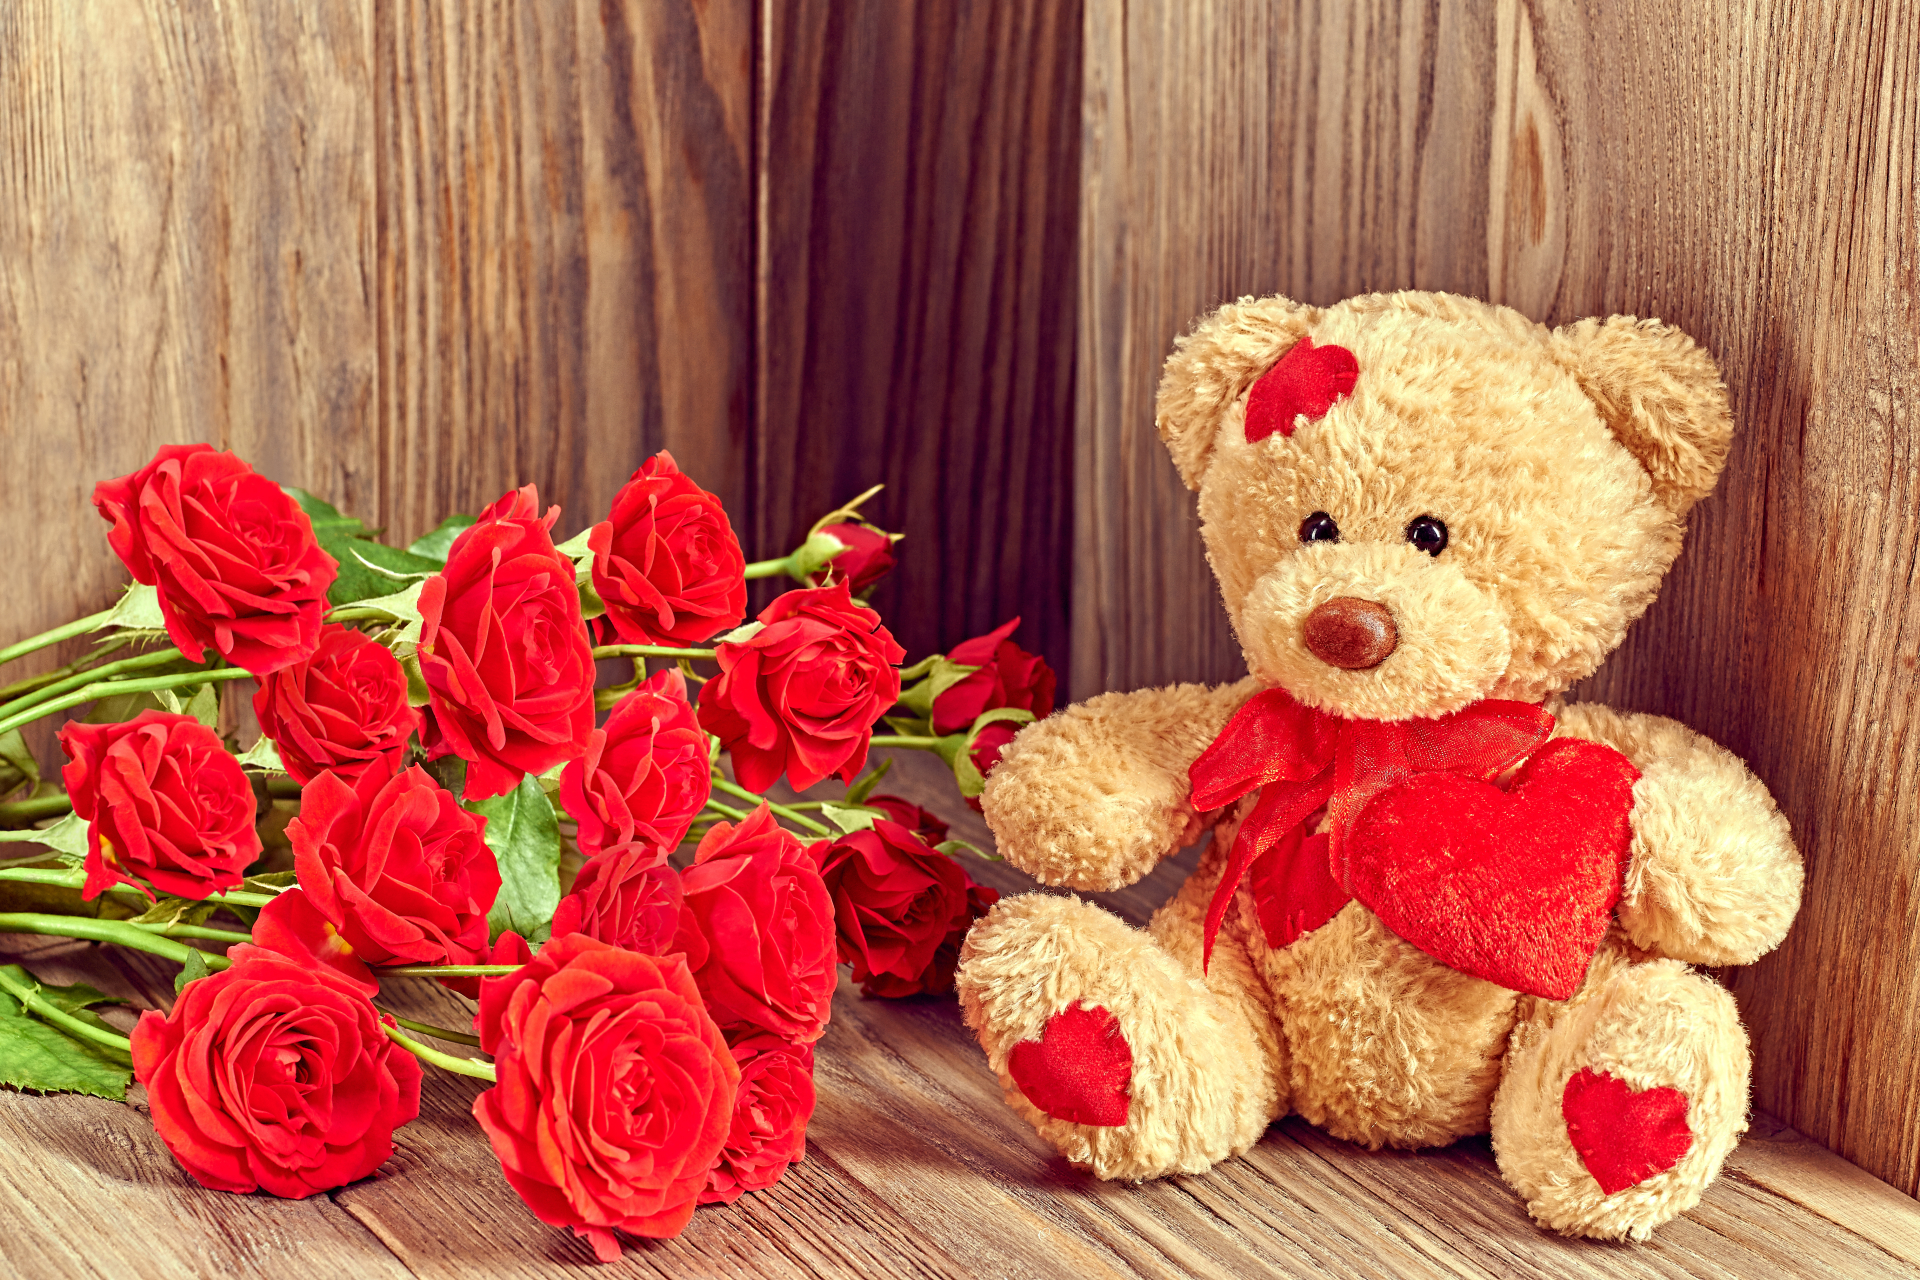 Teddy bear with pink roses - photo#38